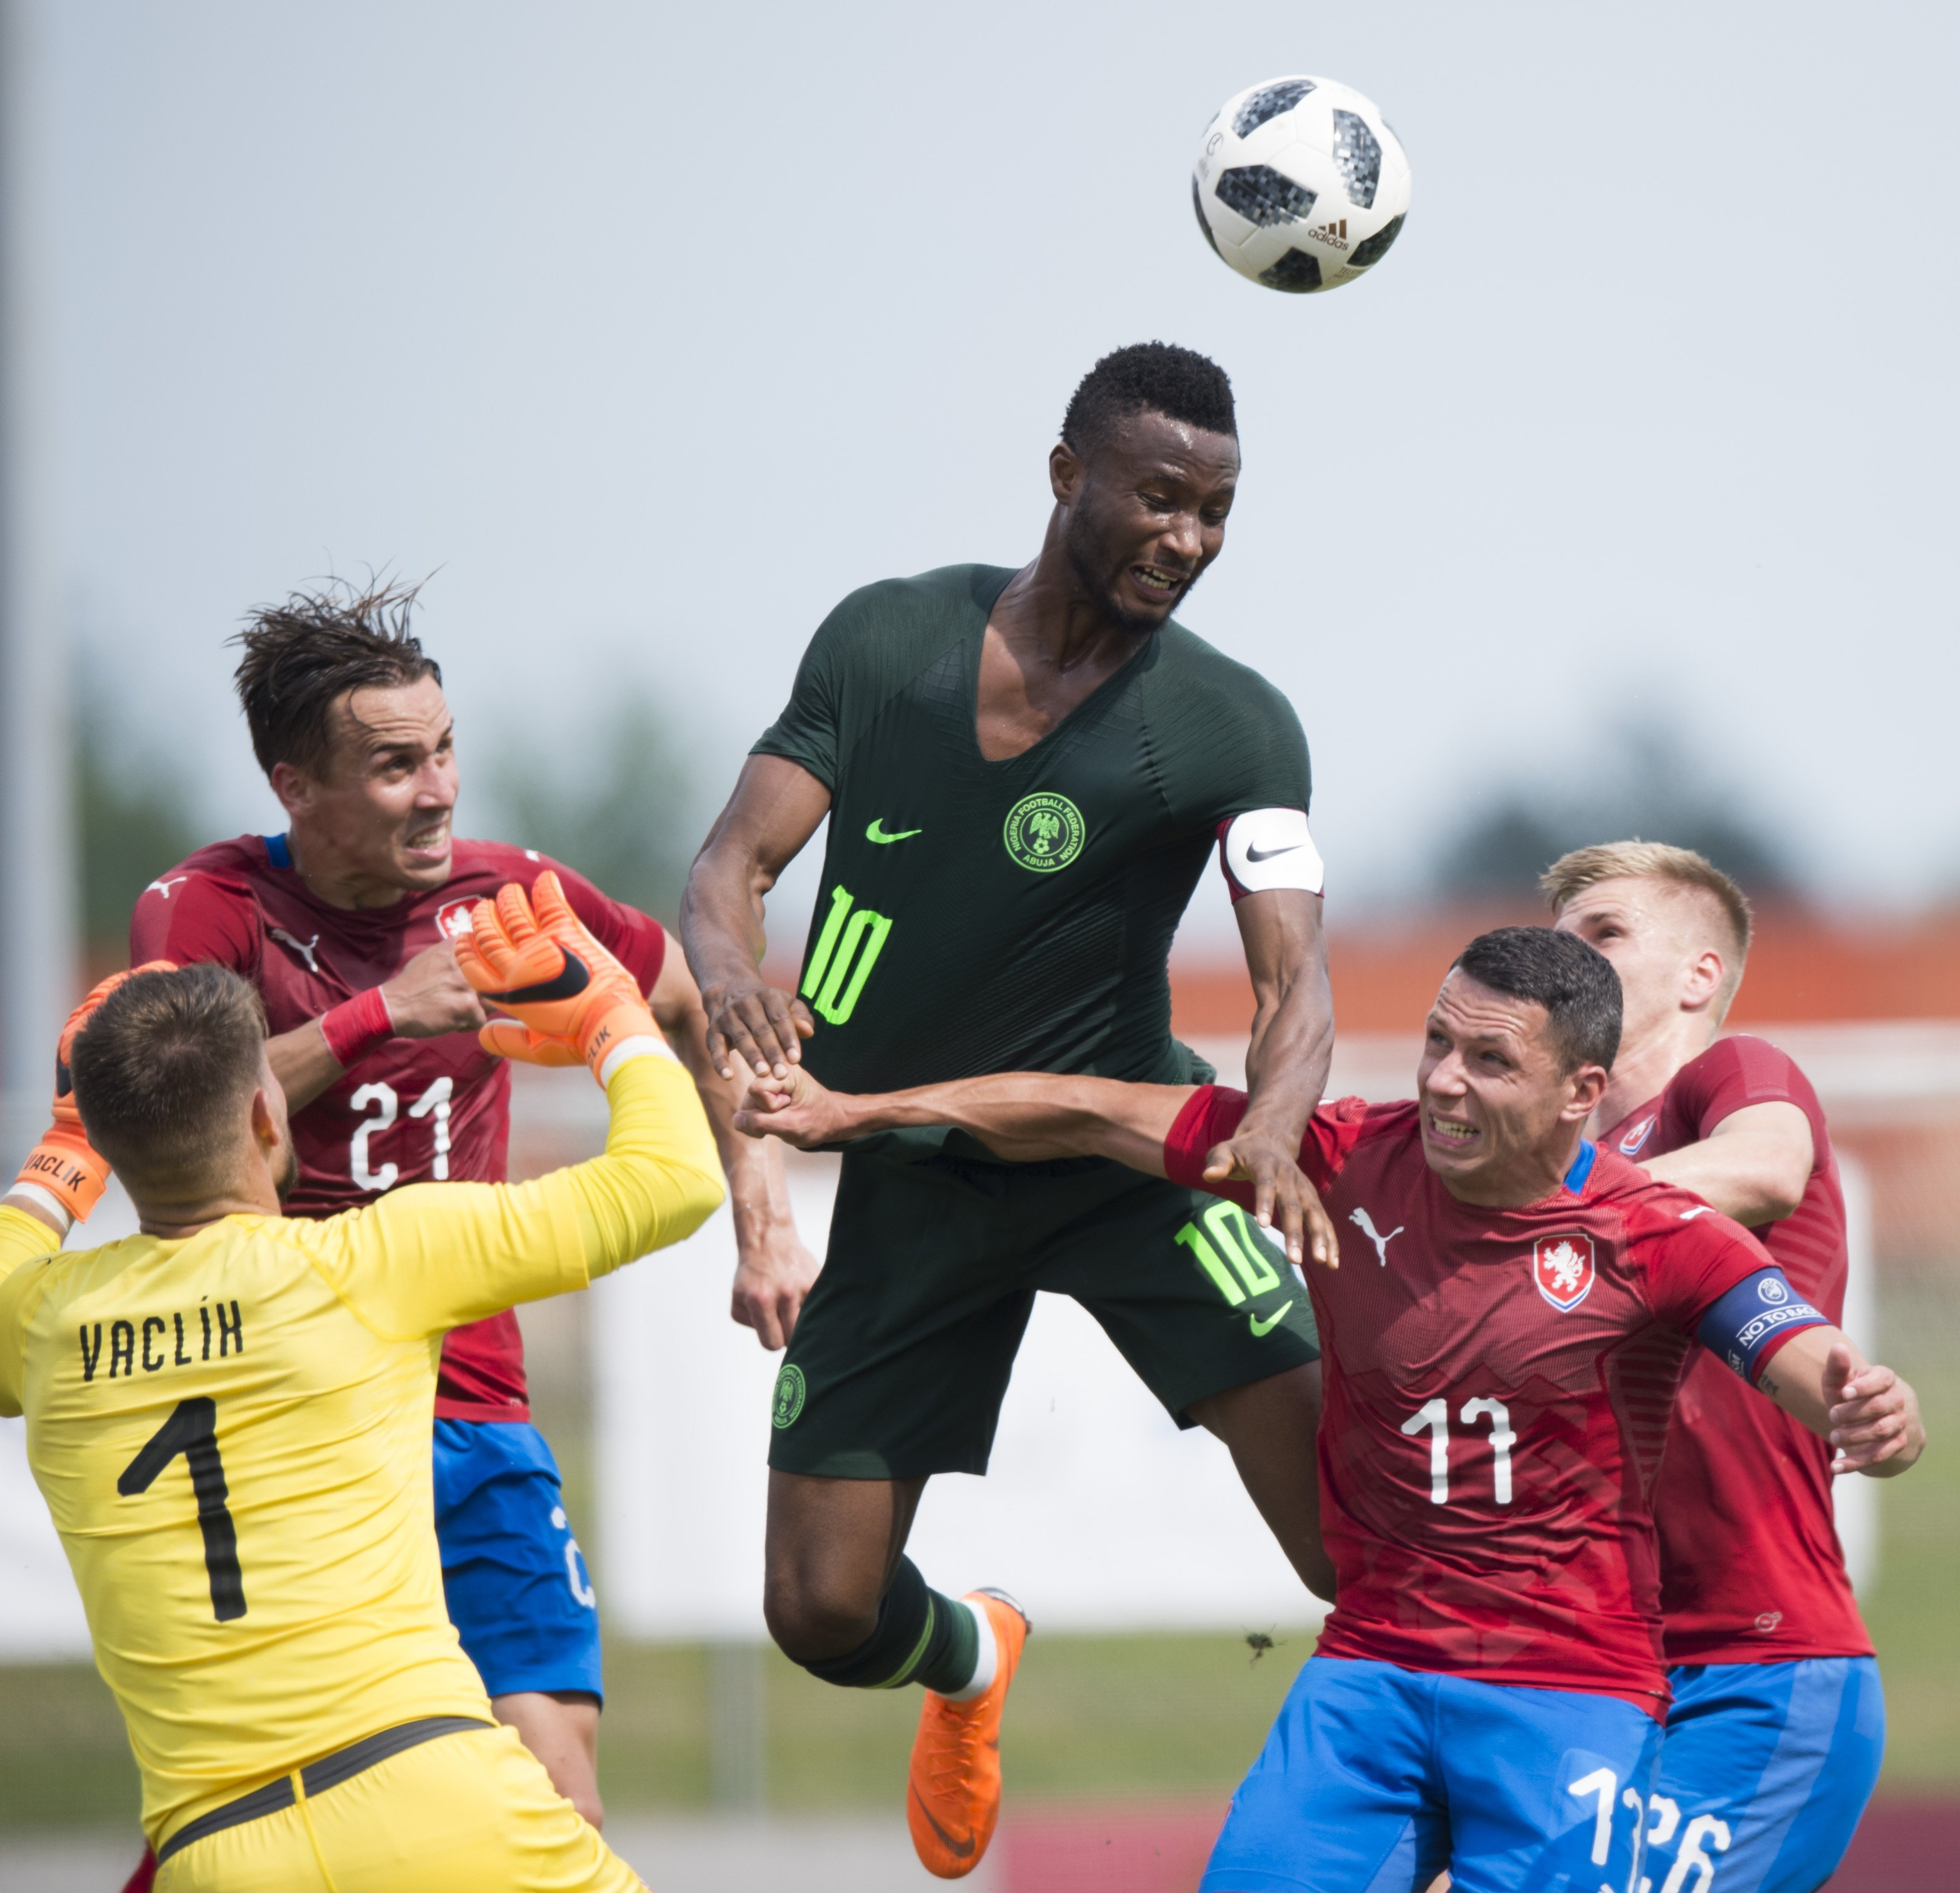 Czech Republic Keeper Vaclik: How We Outsmarted Super Eagles